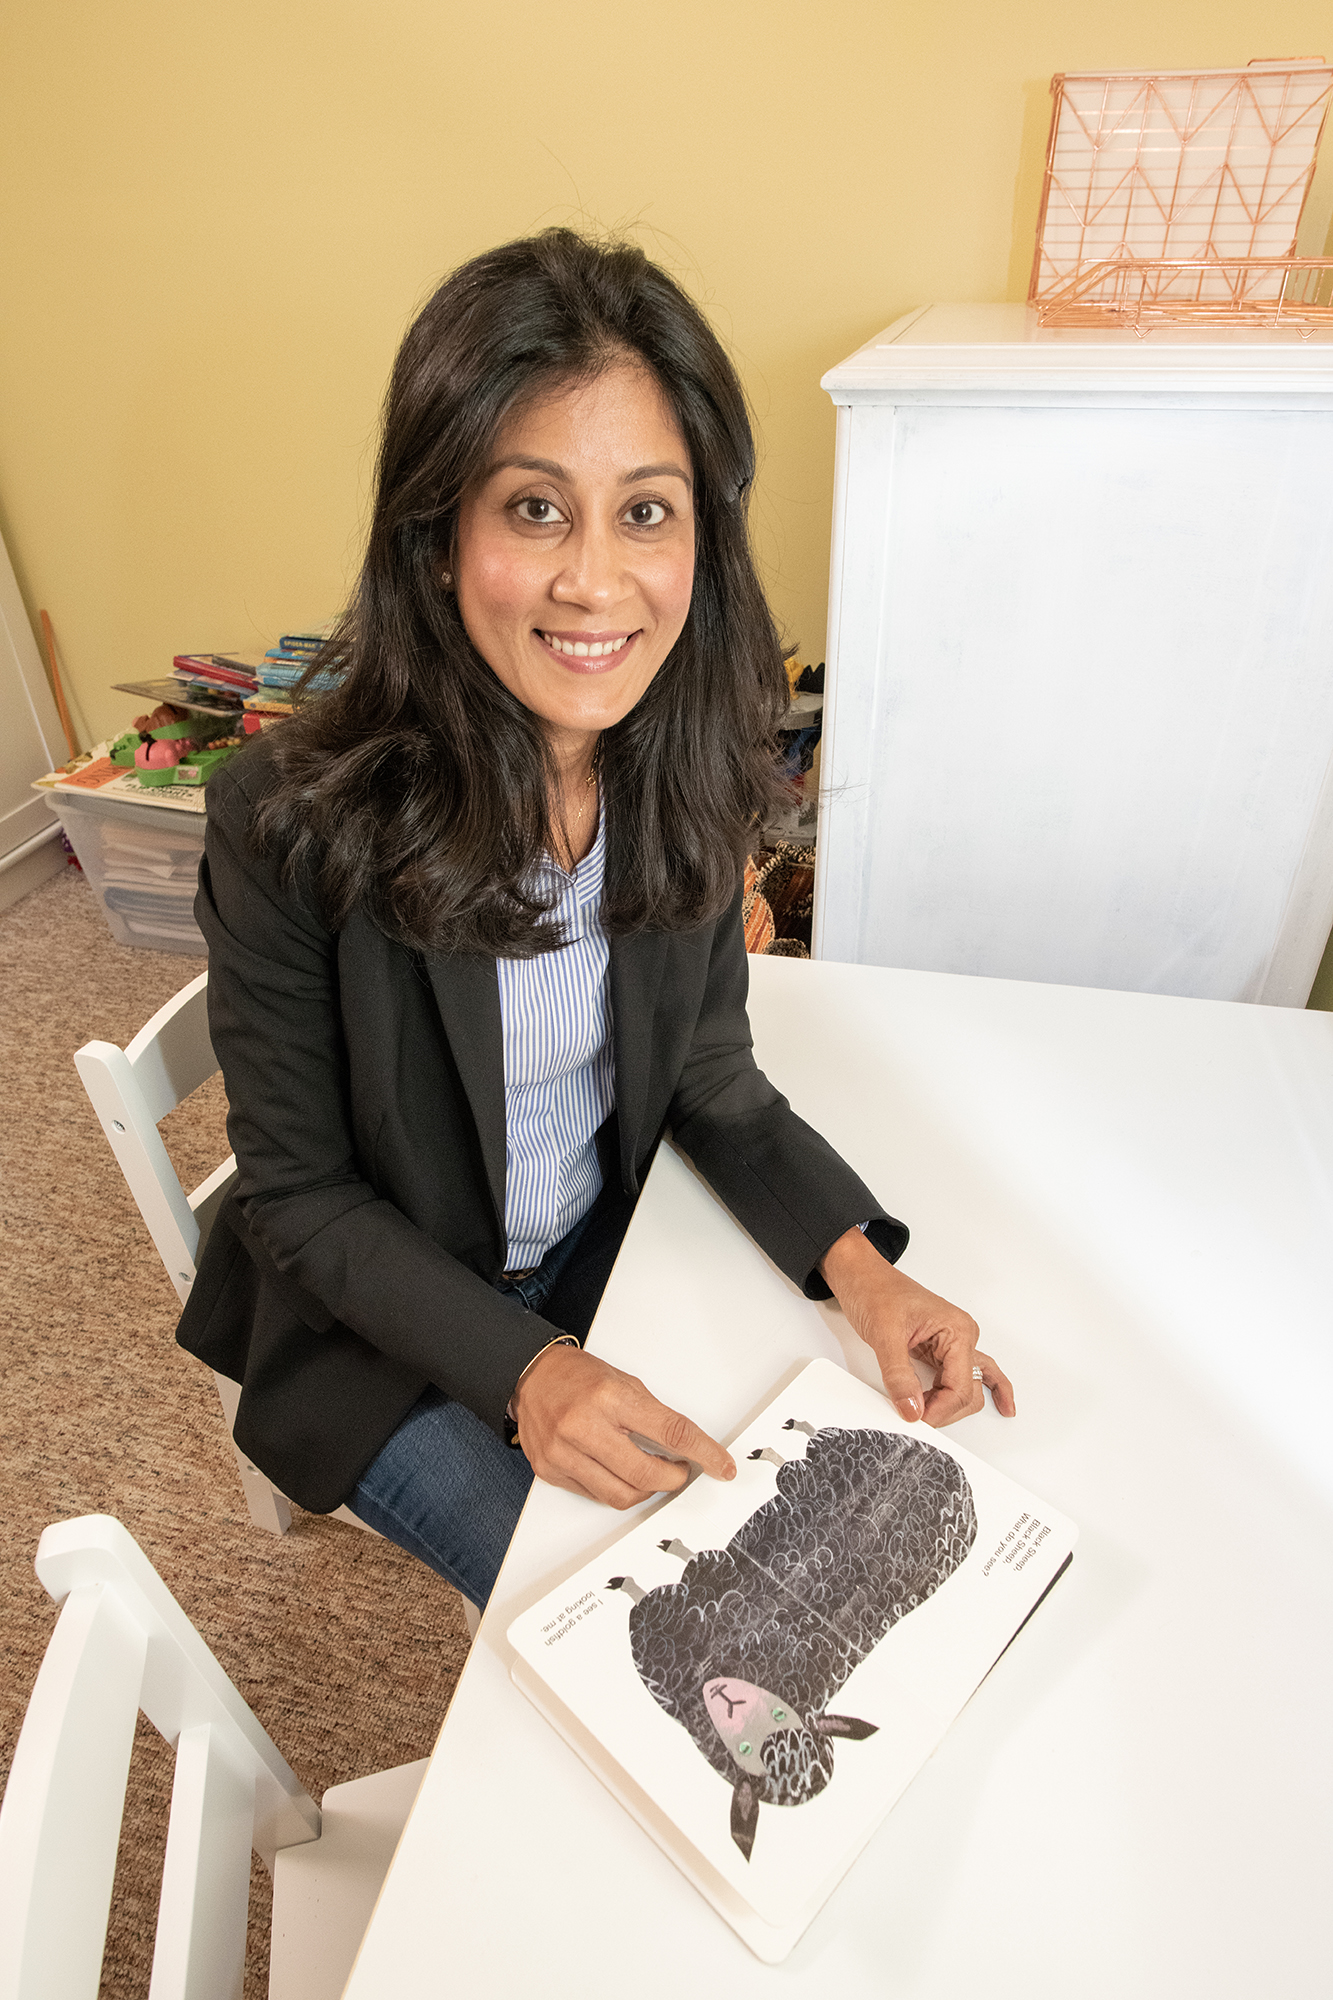 Purvi Gandhi sitting at a table with a picture of a lamb